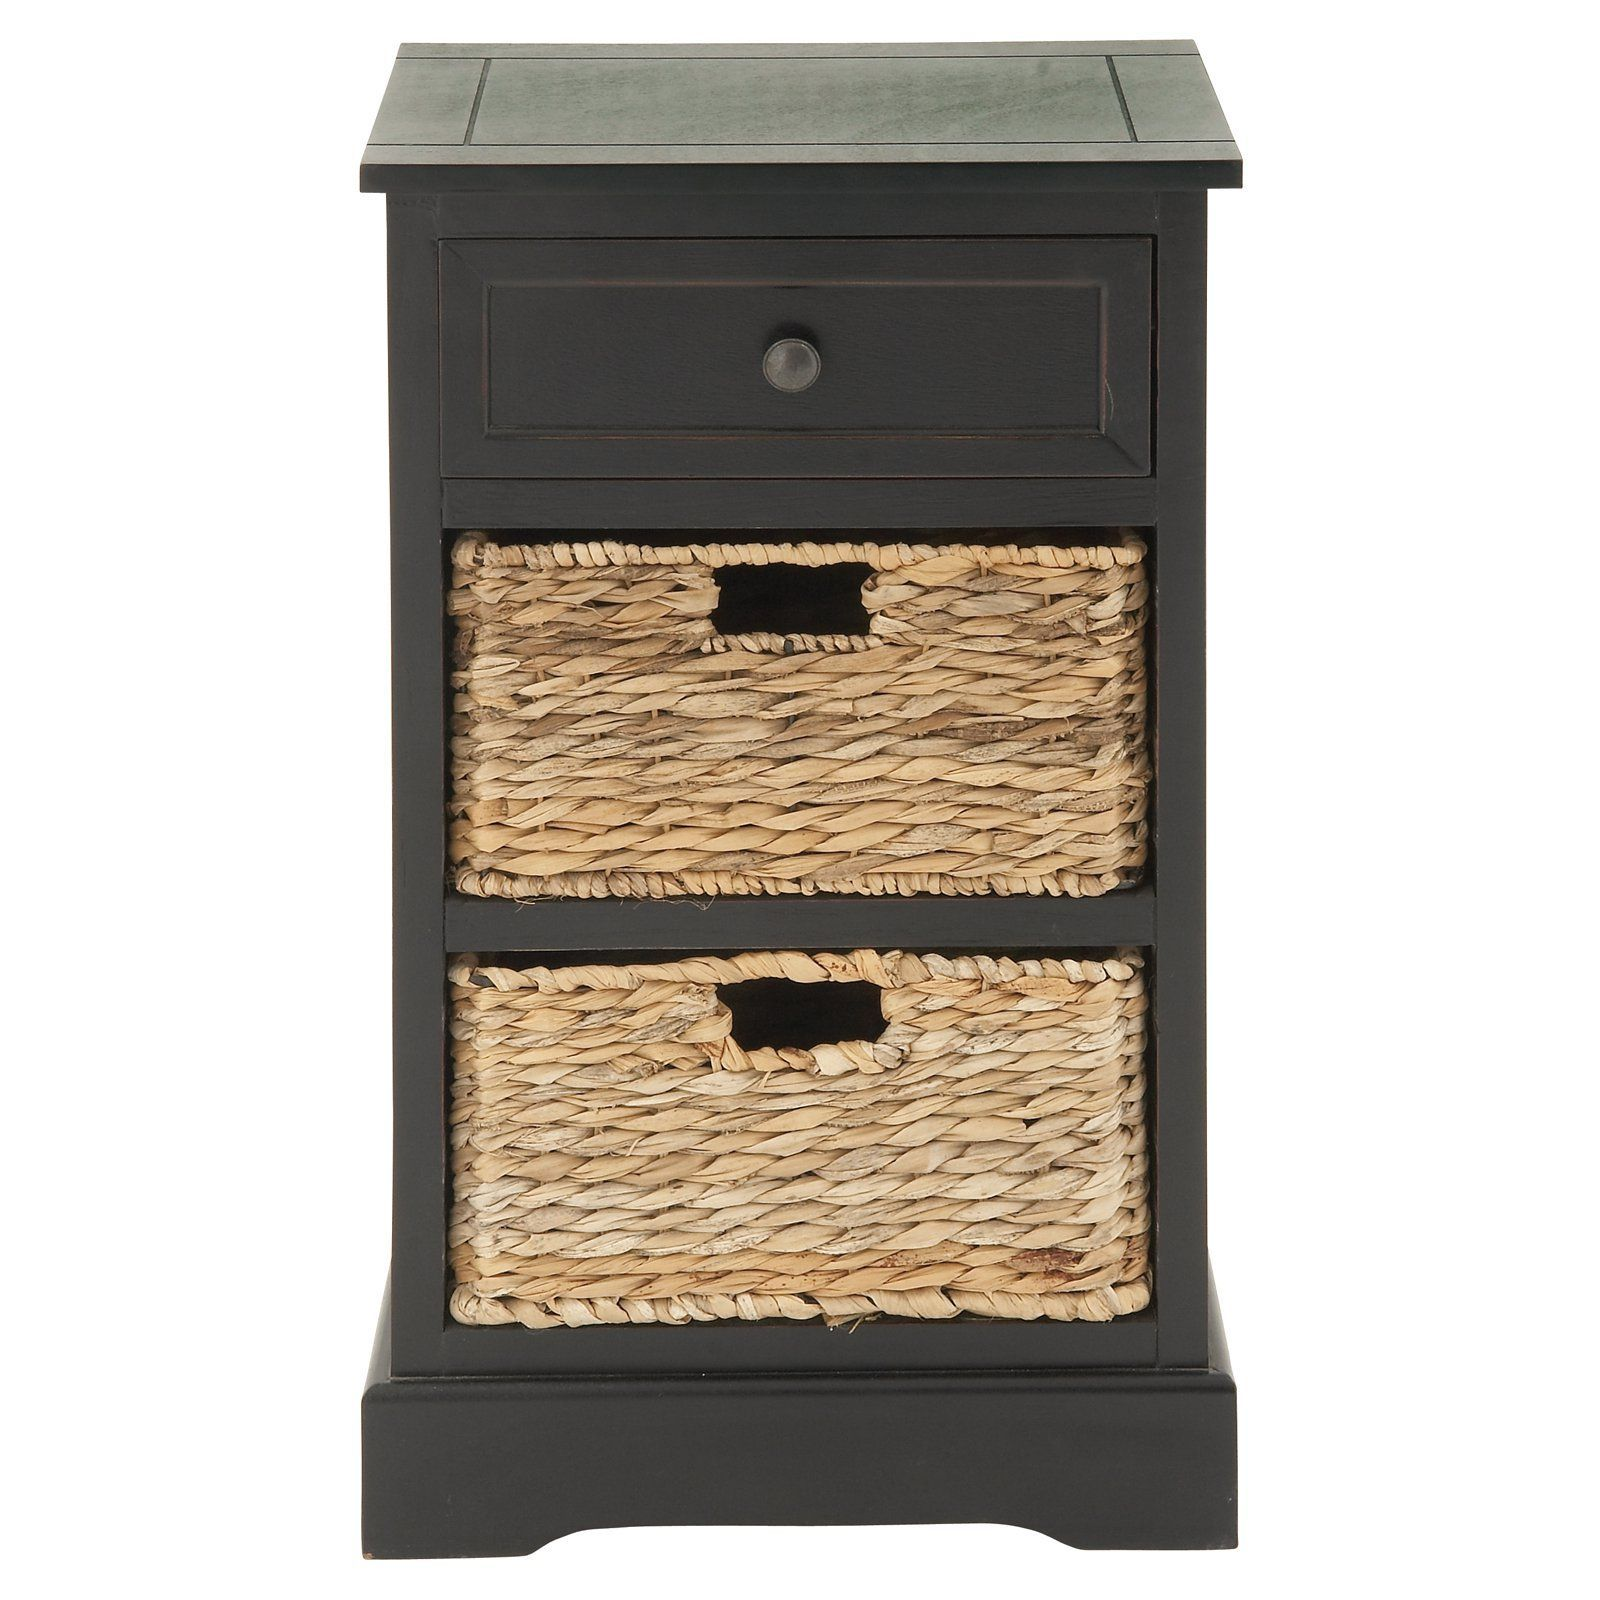 Hallway furniture b&m  DecMode Wooden Side Table with Wicker Baskets  from hayneedle